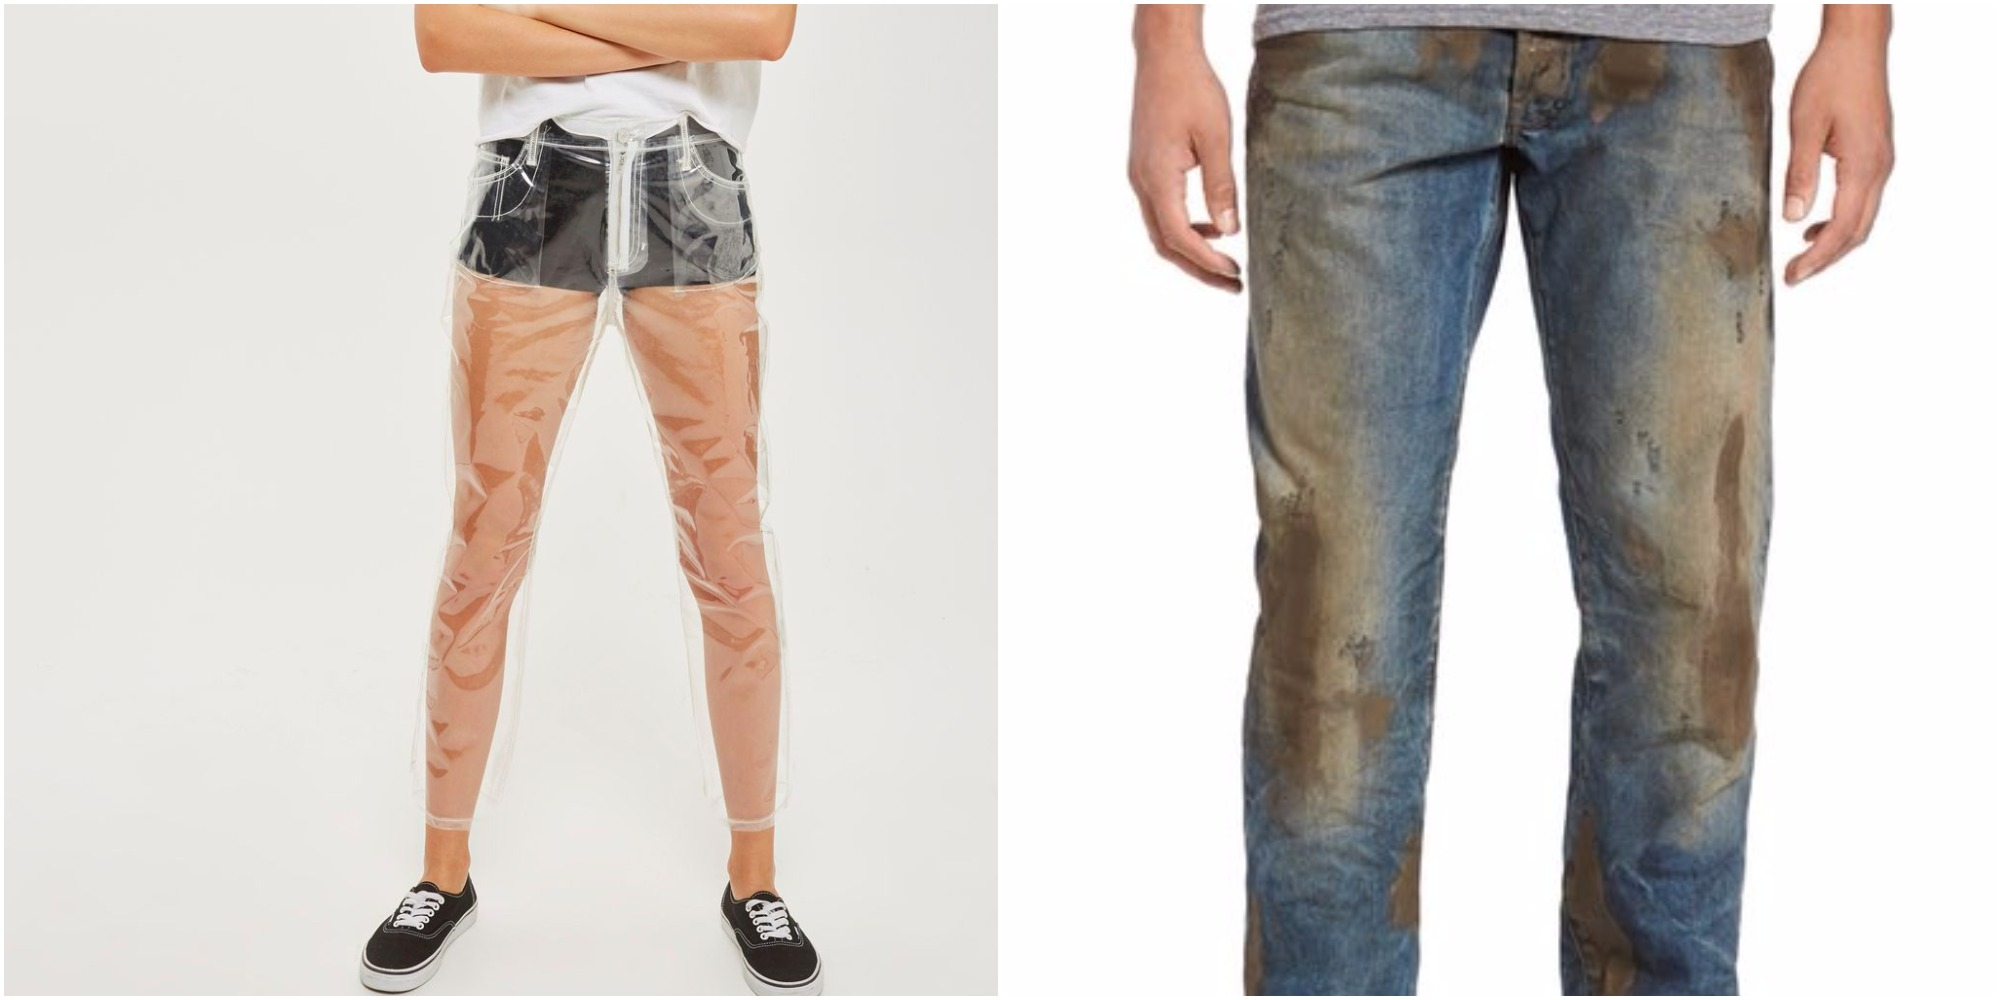 Today In WTF Fashion: TopShop Sells Clear 'Jeans' While Nordstrom Charges $425 For 'Muddy' Ones